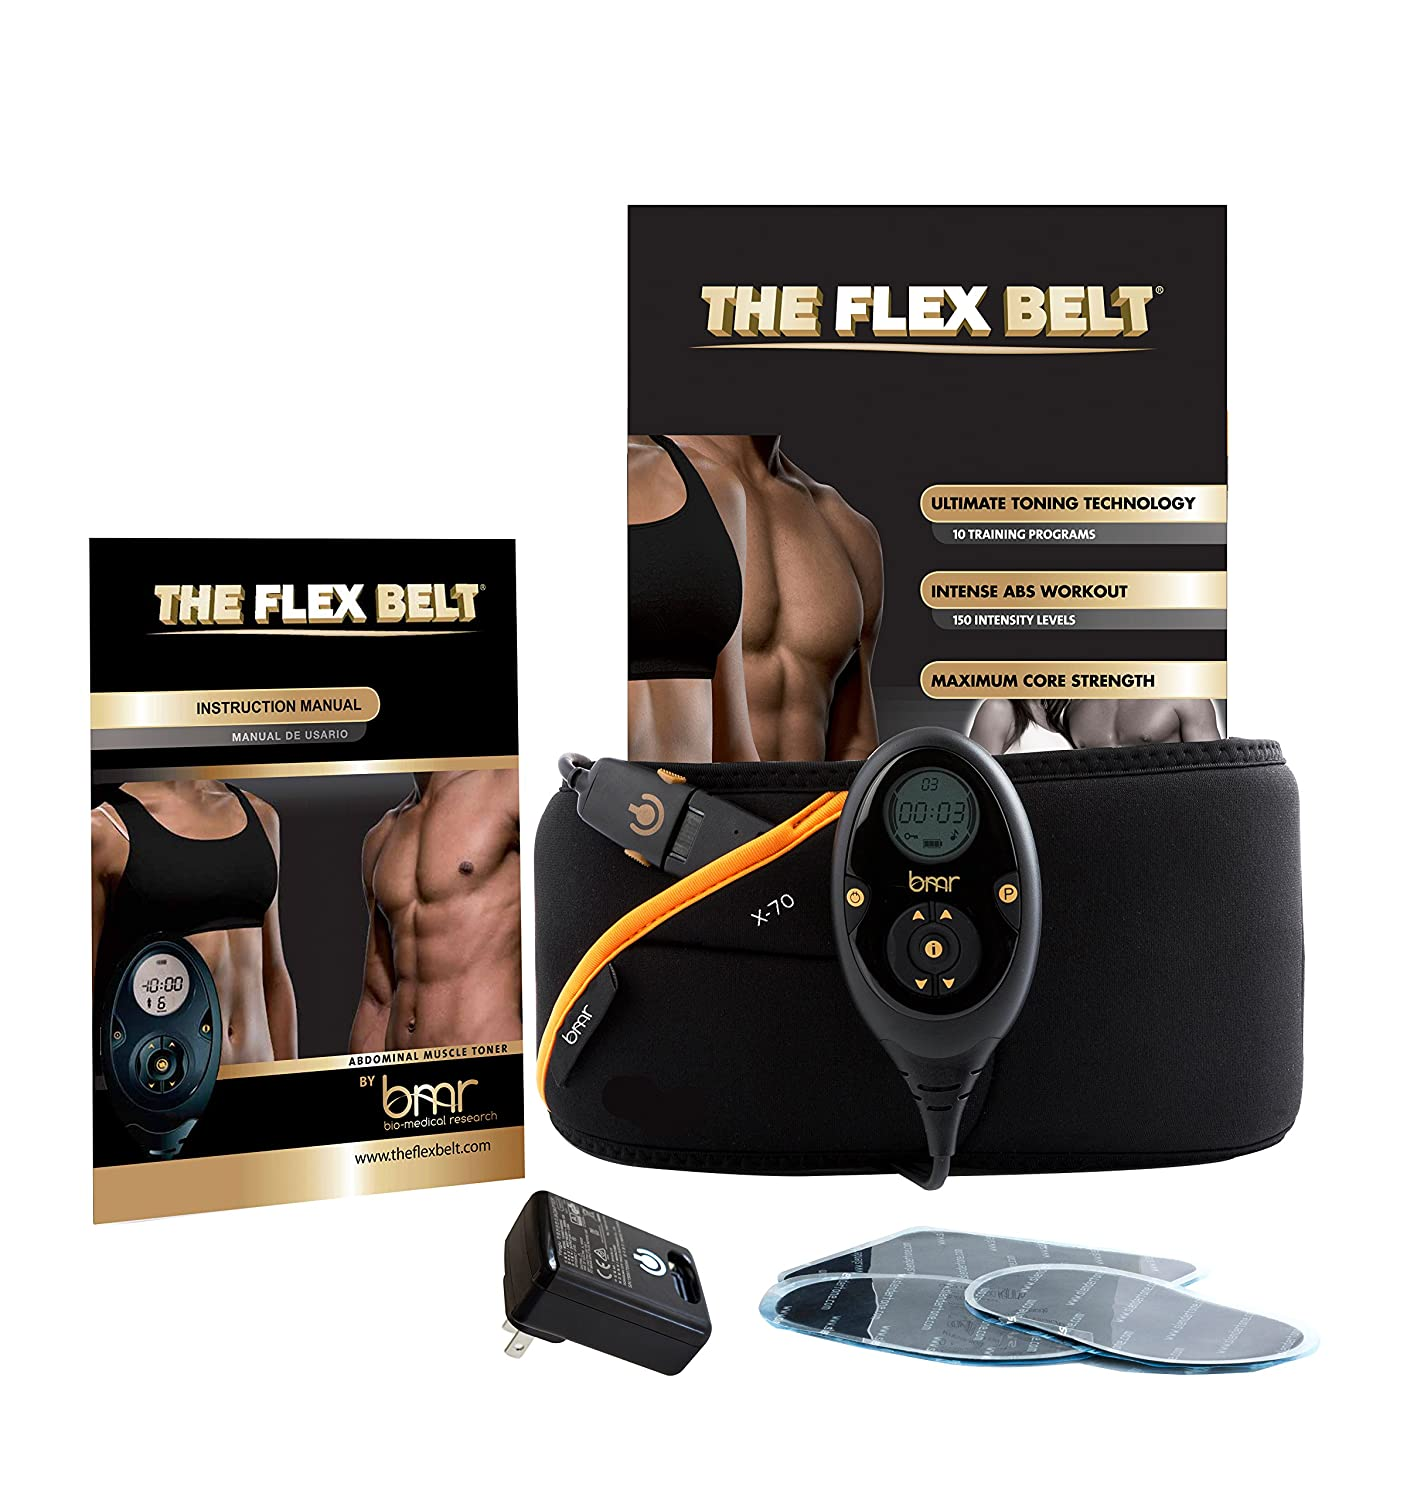 THE FLEX BELT Ab Belt Workout